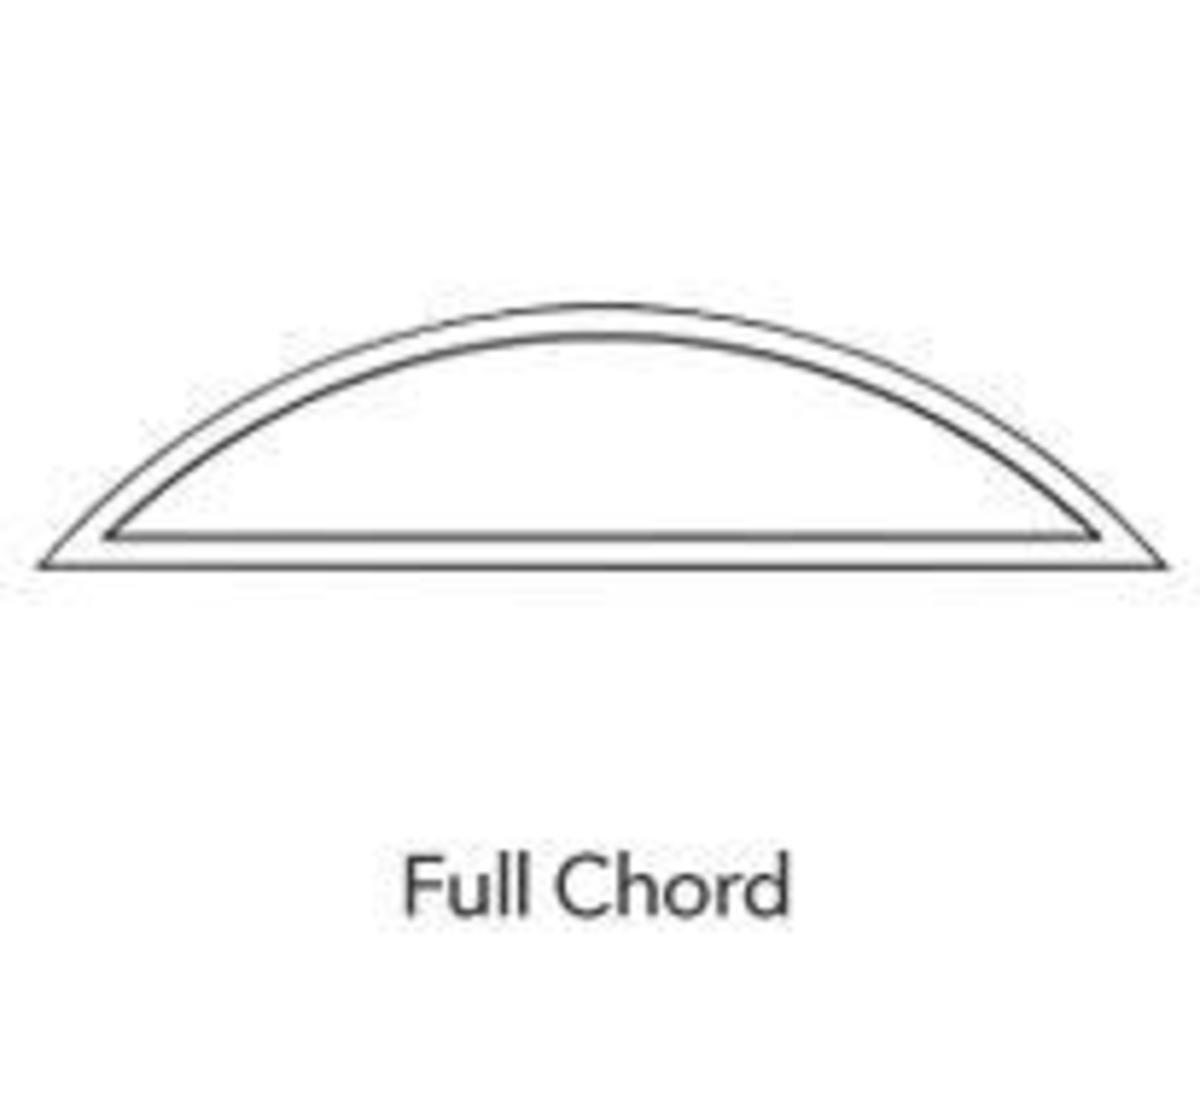 Full chord - eyebrow window by Pella